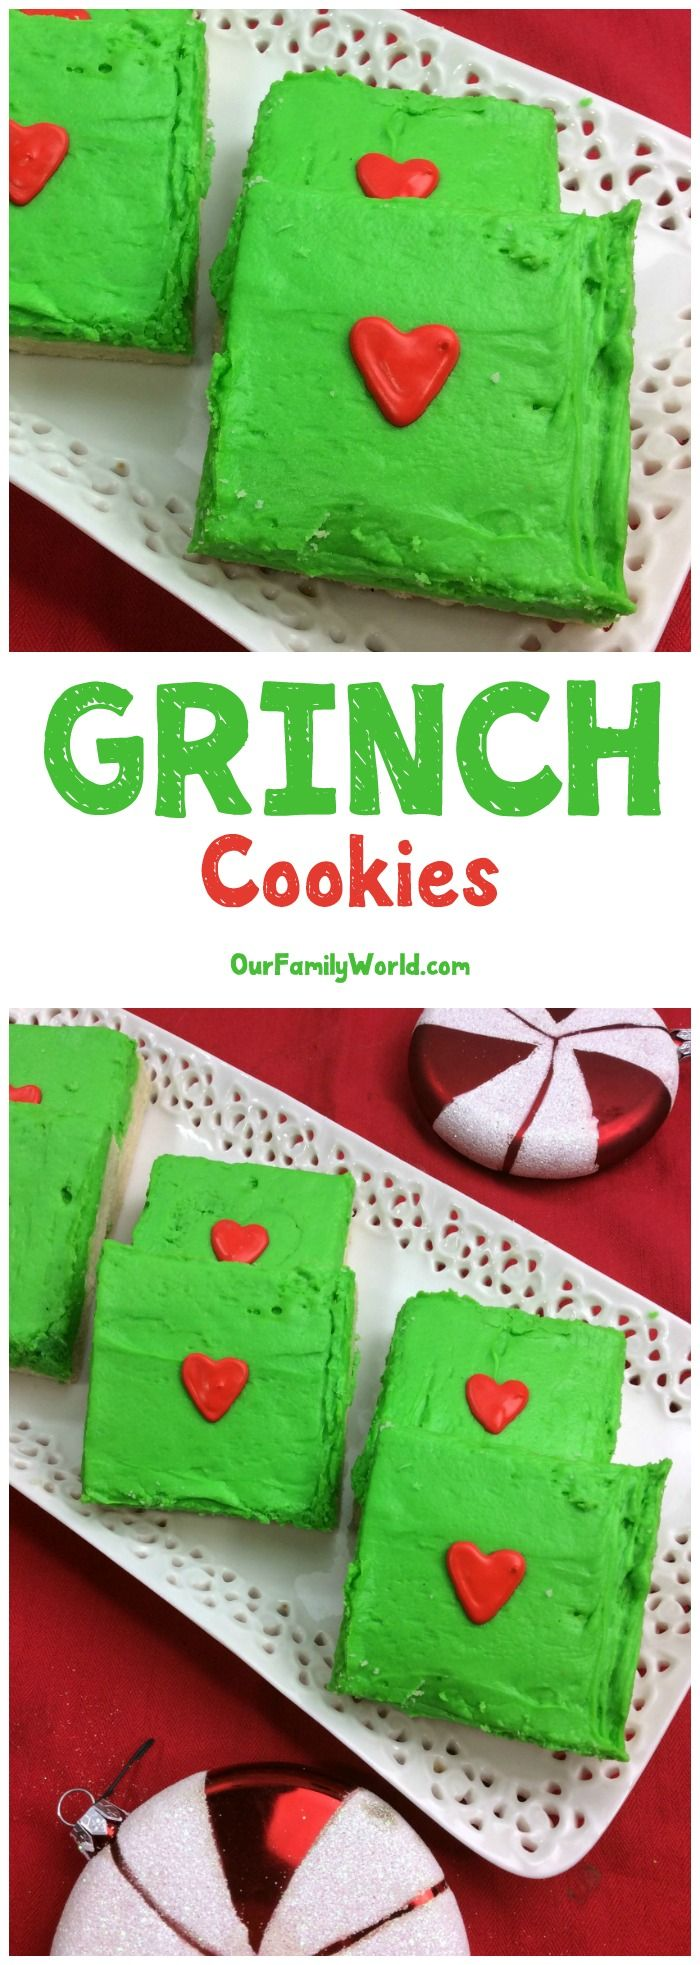 The Grinch Cookies Recipe Your Little Whos Are Craving